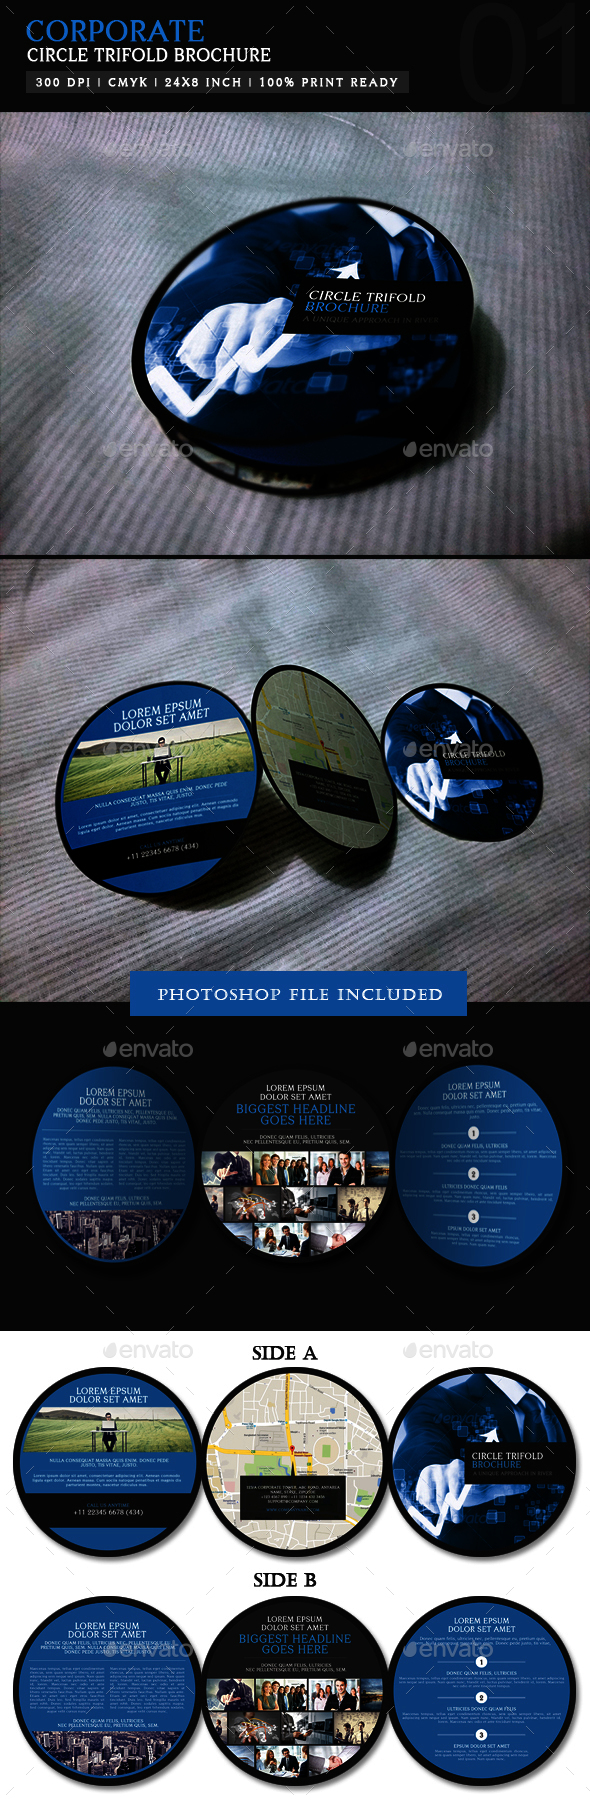 Circle Trifold Borchure 01: Corporate - Corporate Brochures